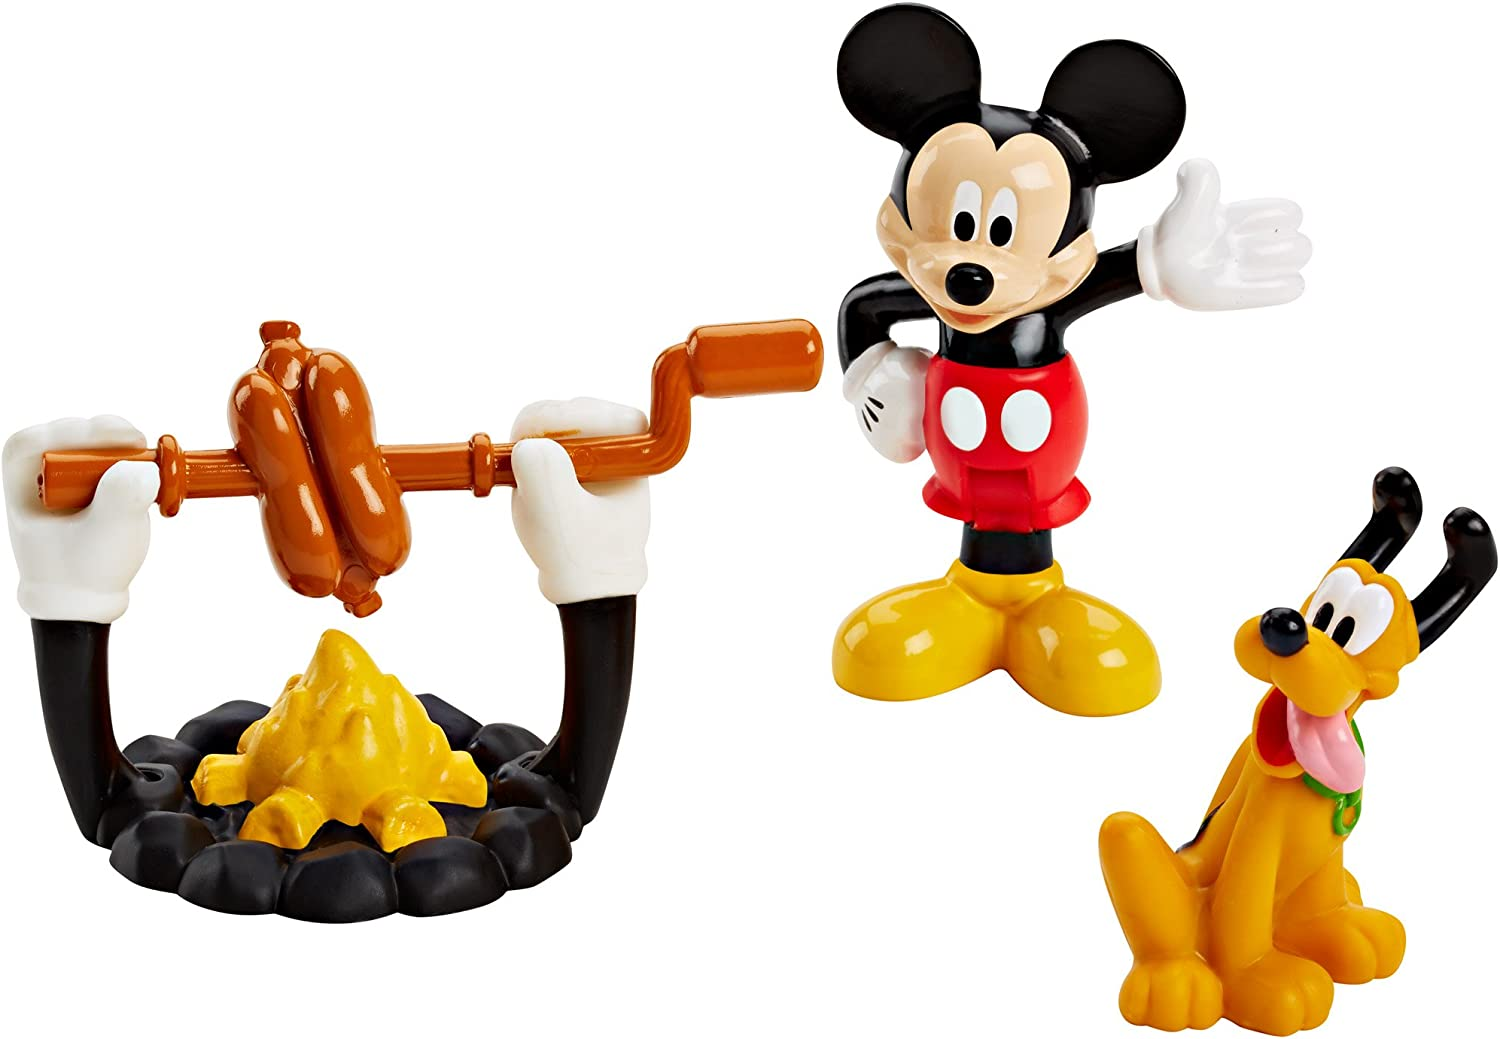 Fisher-Price Disney Super List price popular specialty store Mickey Mouse Grillin' Clubhouse Silly Micke